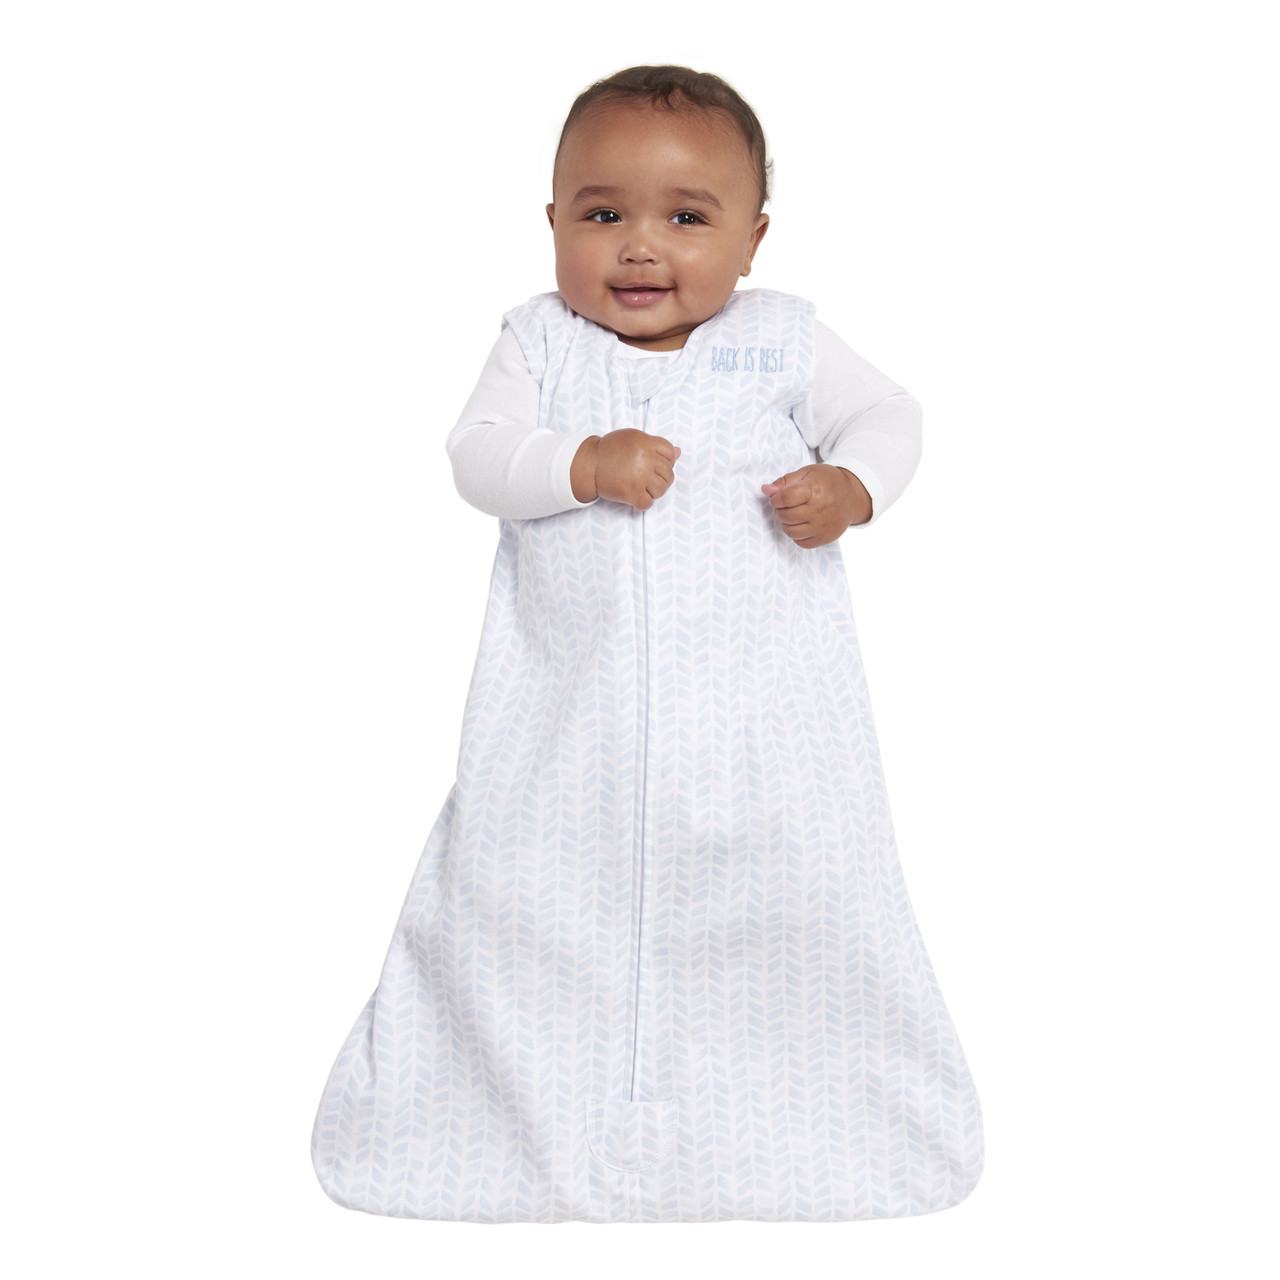 HALO® SleepSack® wearable blanket platinum100% CottonPale Blue Chevron 44420b233